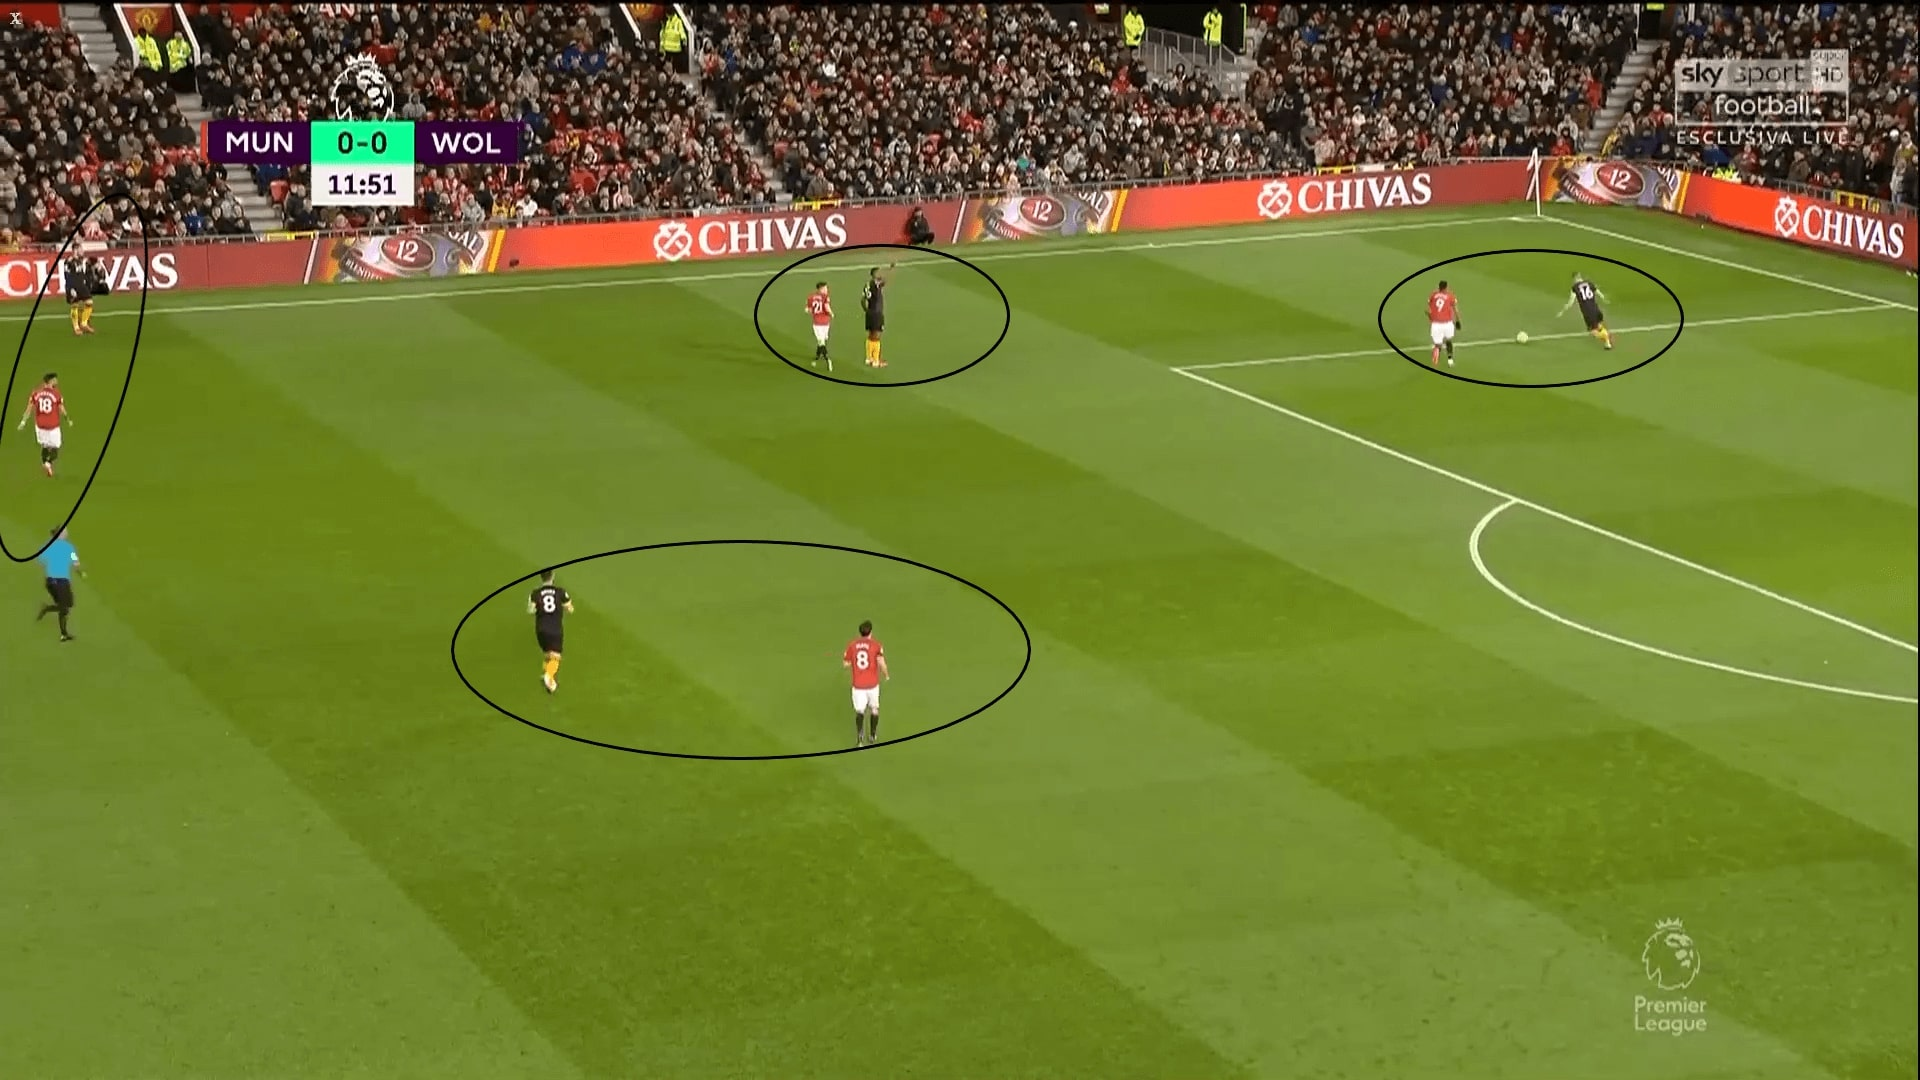 Premier League 2019/20: Manchester United vs Wolves - tactical analysis tactics